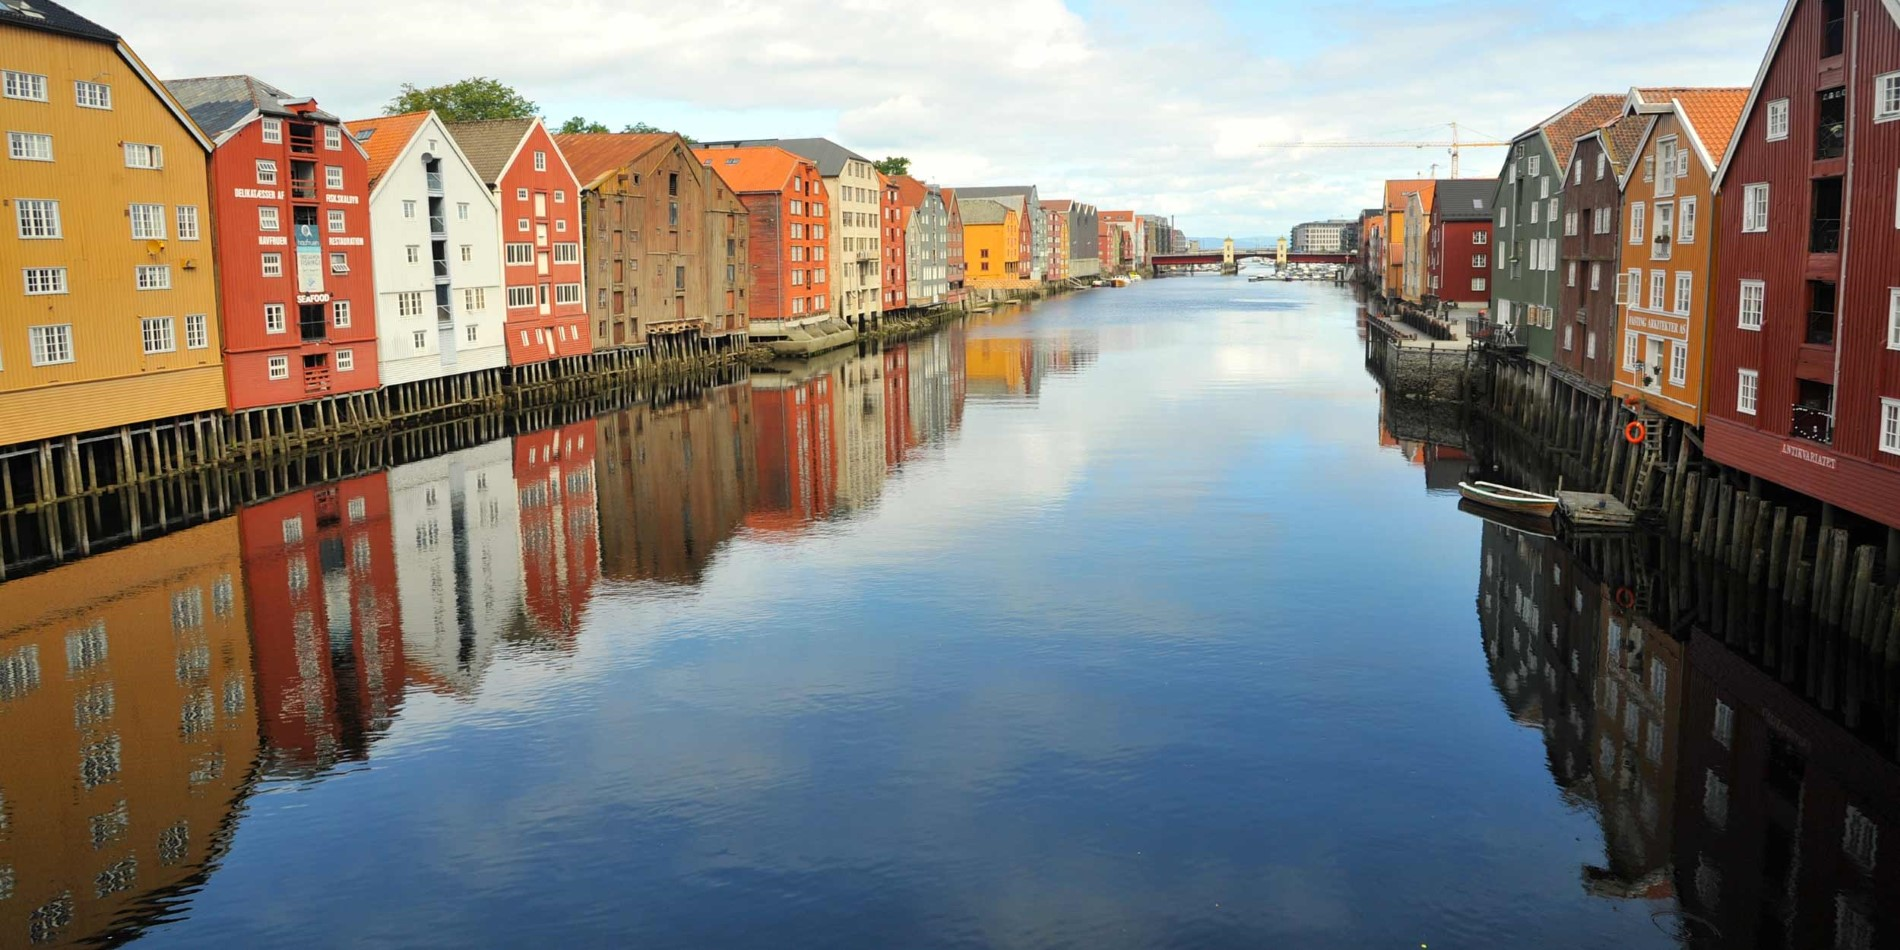 2500x1250_Trondheim_The-docks_By_Serena-Tang_Guest-Image.jpg